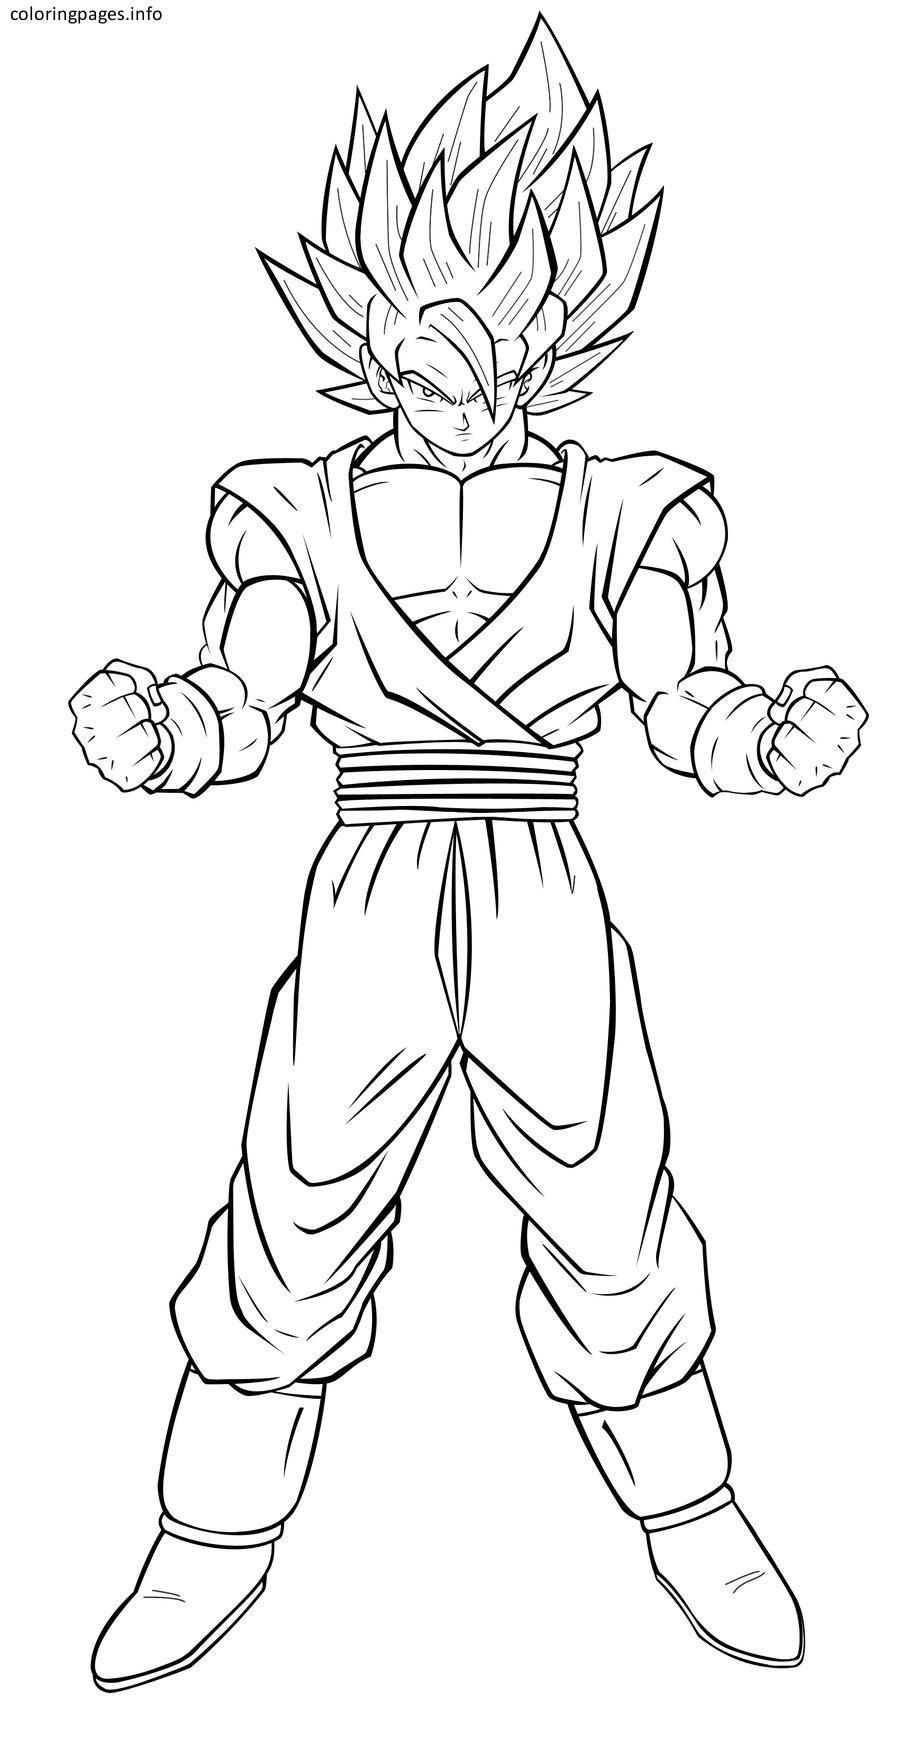 Super Saiyan Goku Coloring Pages Dibujo De Goku Como Dibujar A Goku Spiderman Dibujo Para Colorear